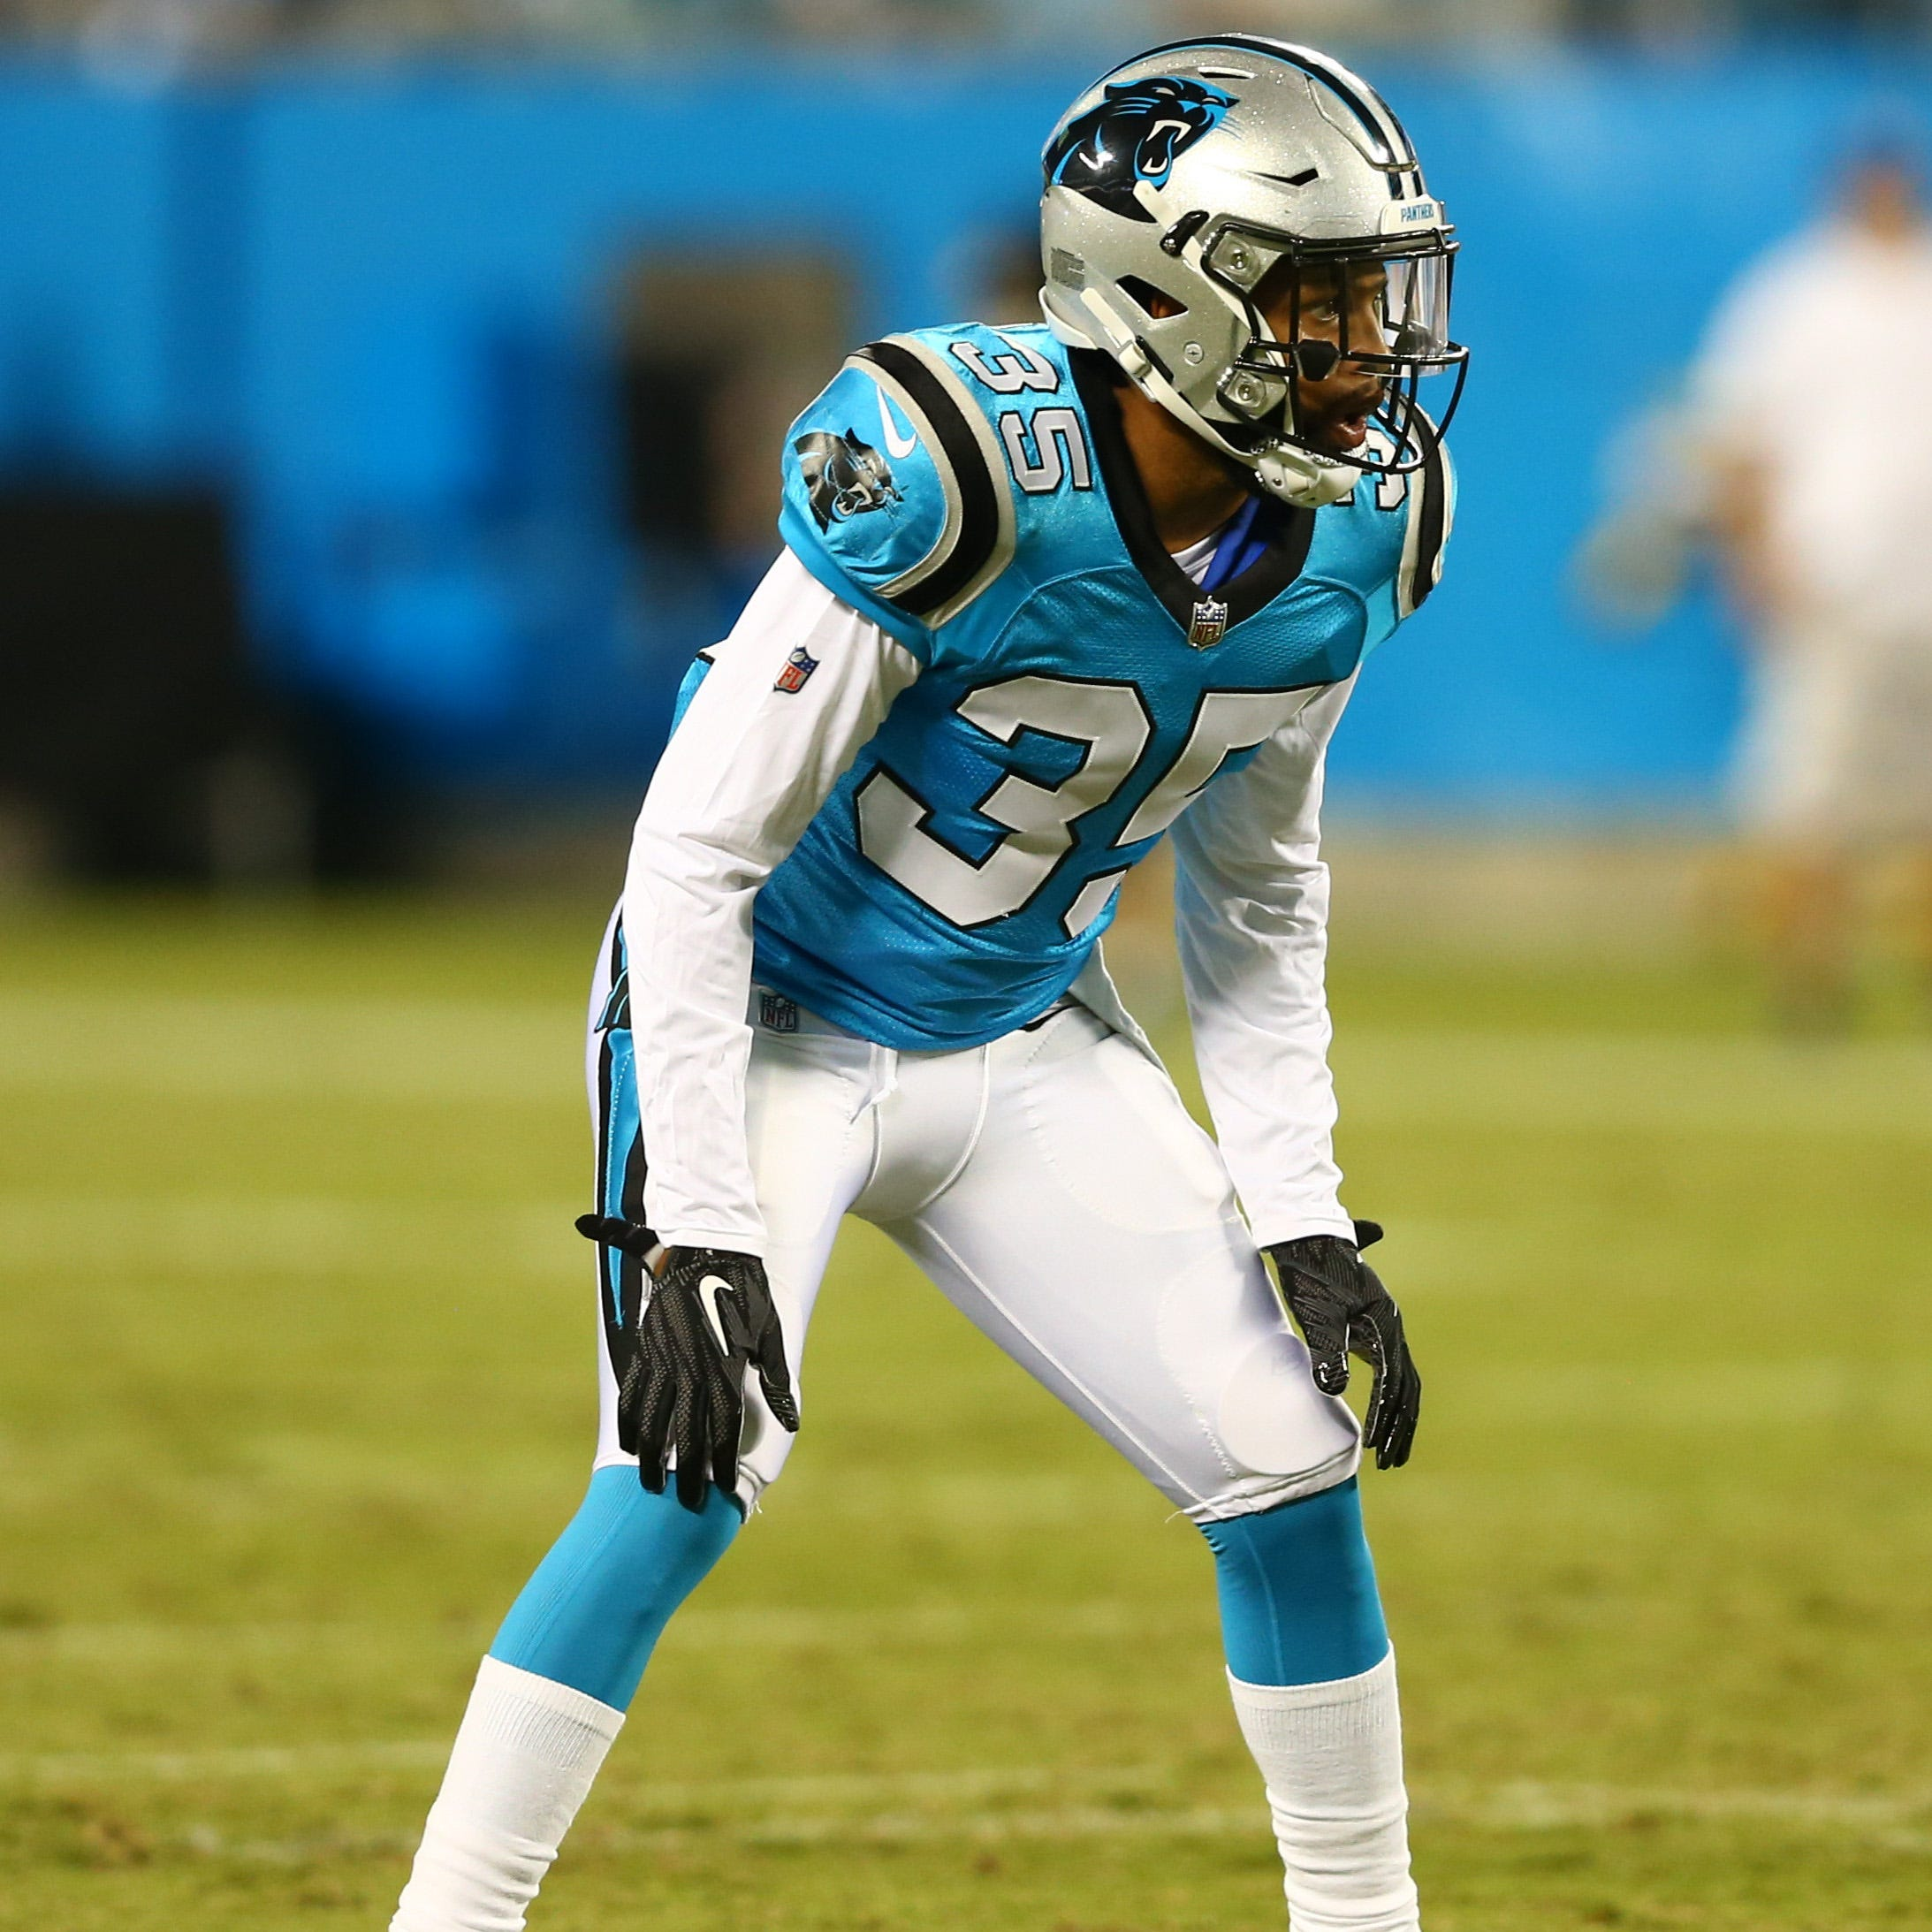 Aug 17, 2018; Charlotte, NC, USA; Carolina Panthers cornerback Corn Elder (35) lines up during the first half against the Miami Dolphins at Bank of America Stadium. Mandatory Credit: Jeremy Brevard-USA TODAY Sports